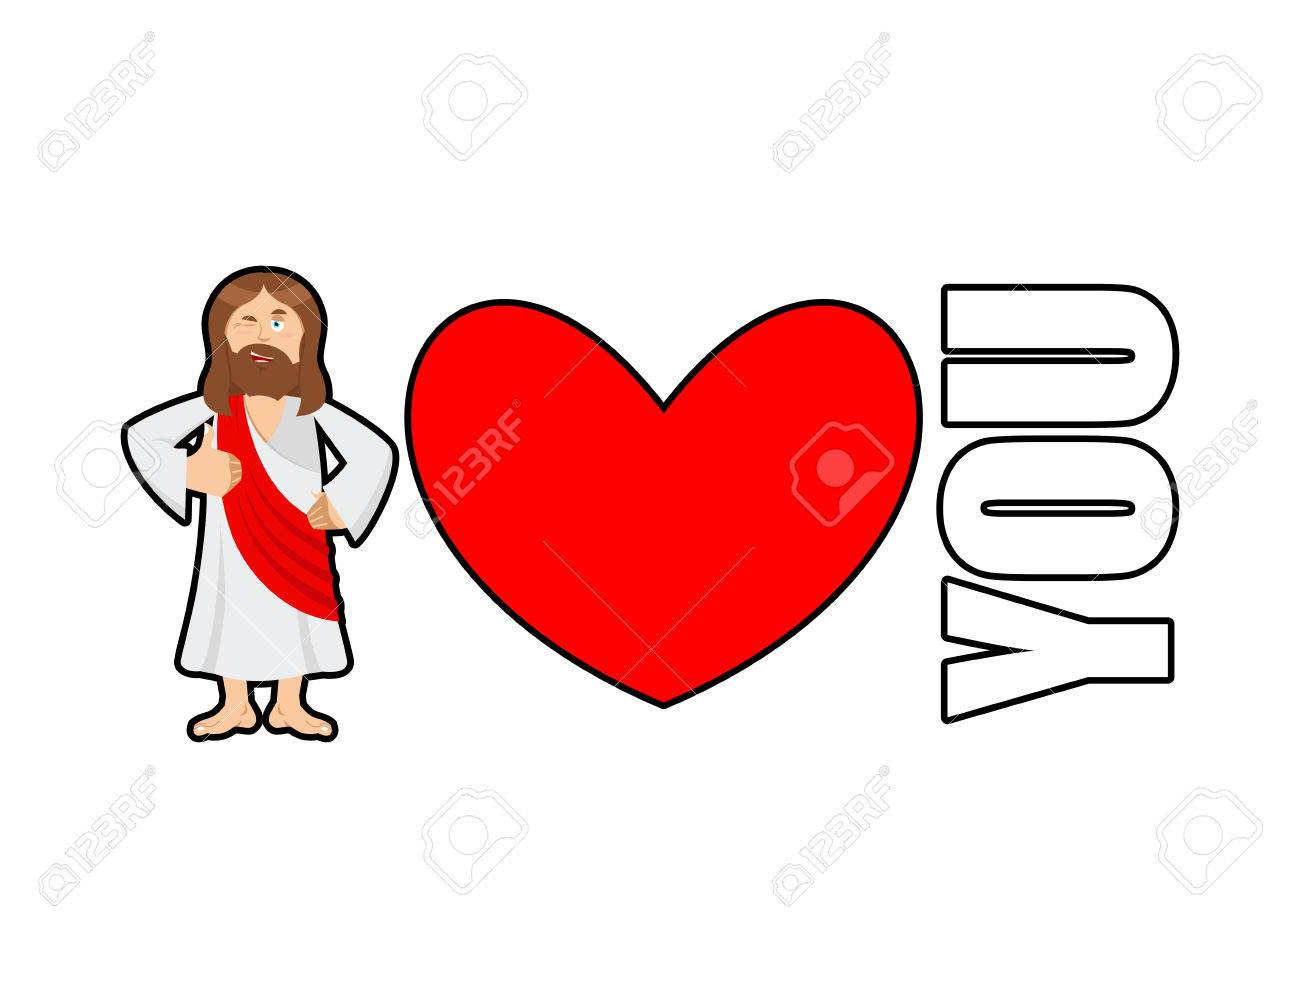 jesus loves you you need gog symbol of heart and son of god